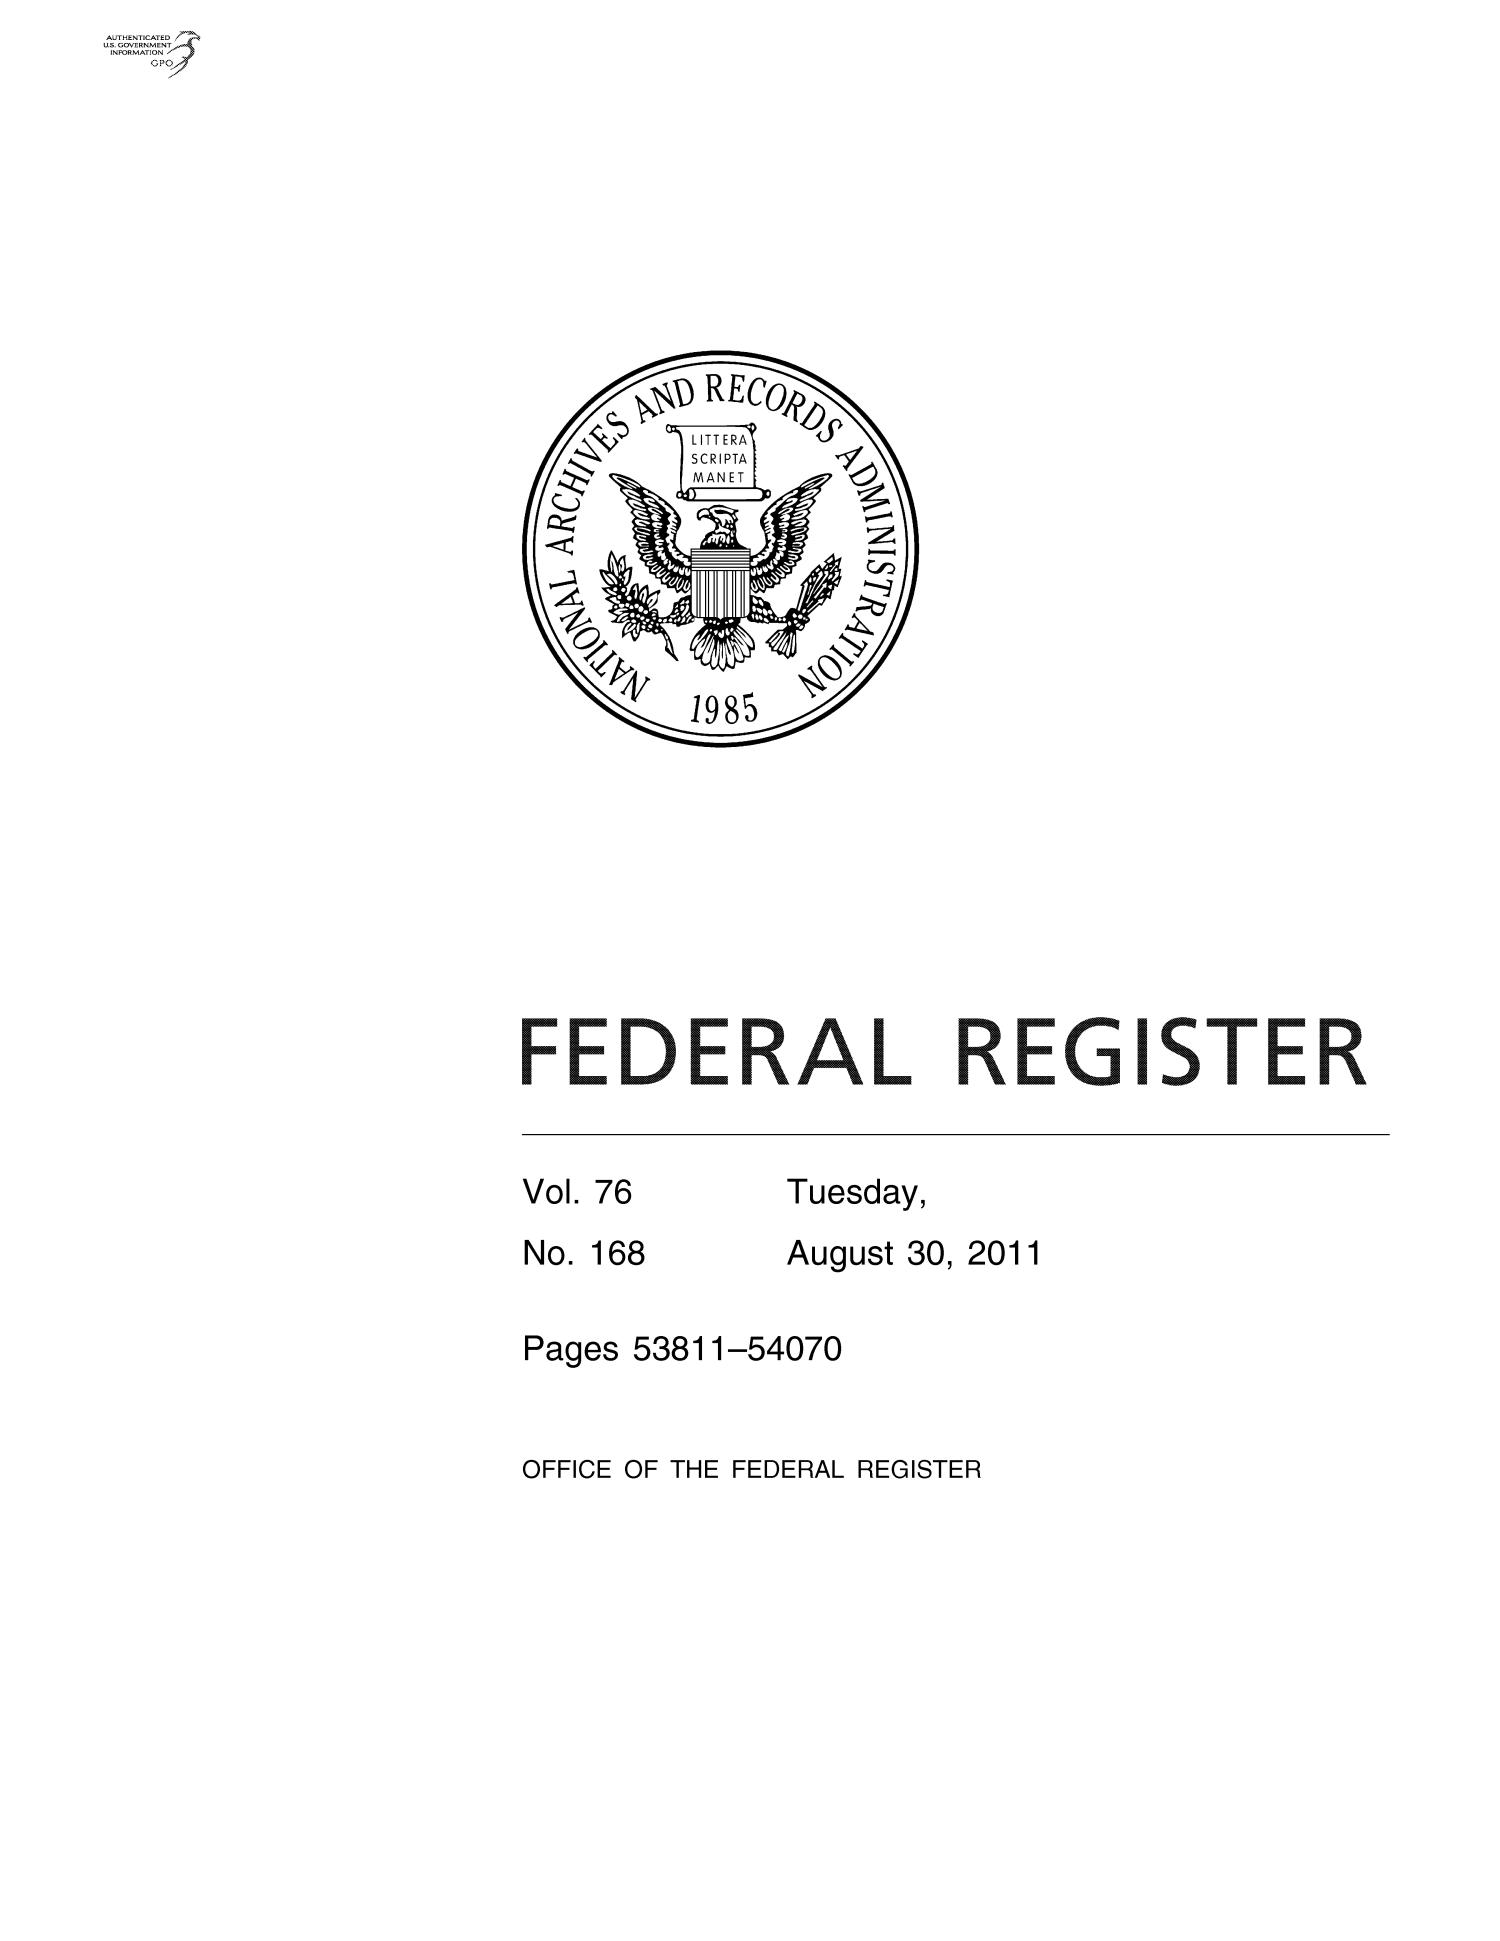 Federal Register, Volume 76, Number 168, August 30, 2011, Pages 53811-54070                                                                                                      Title Page